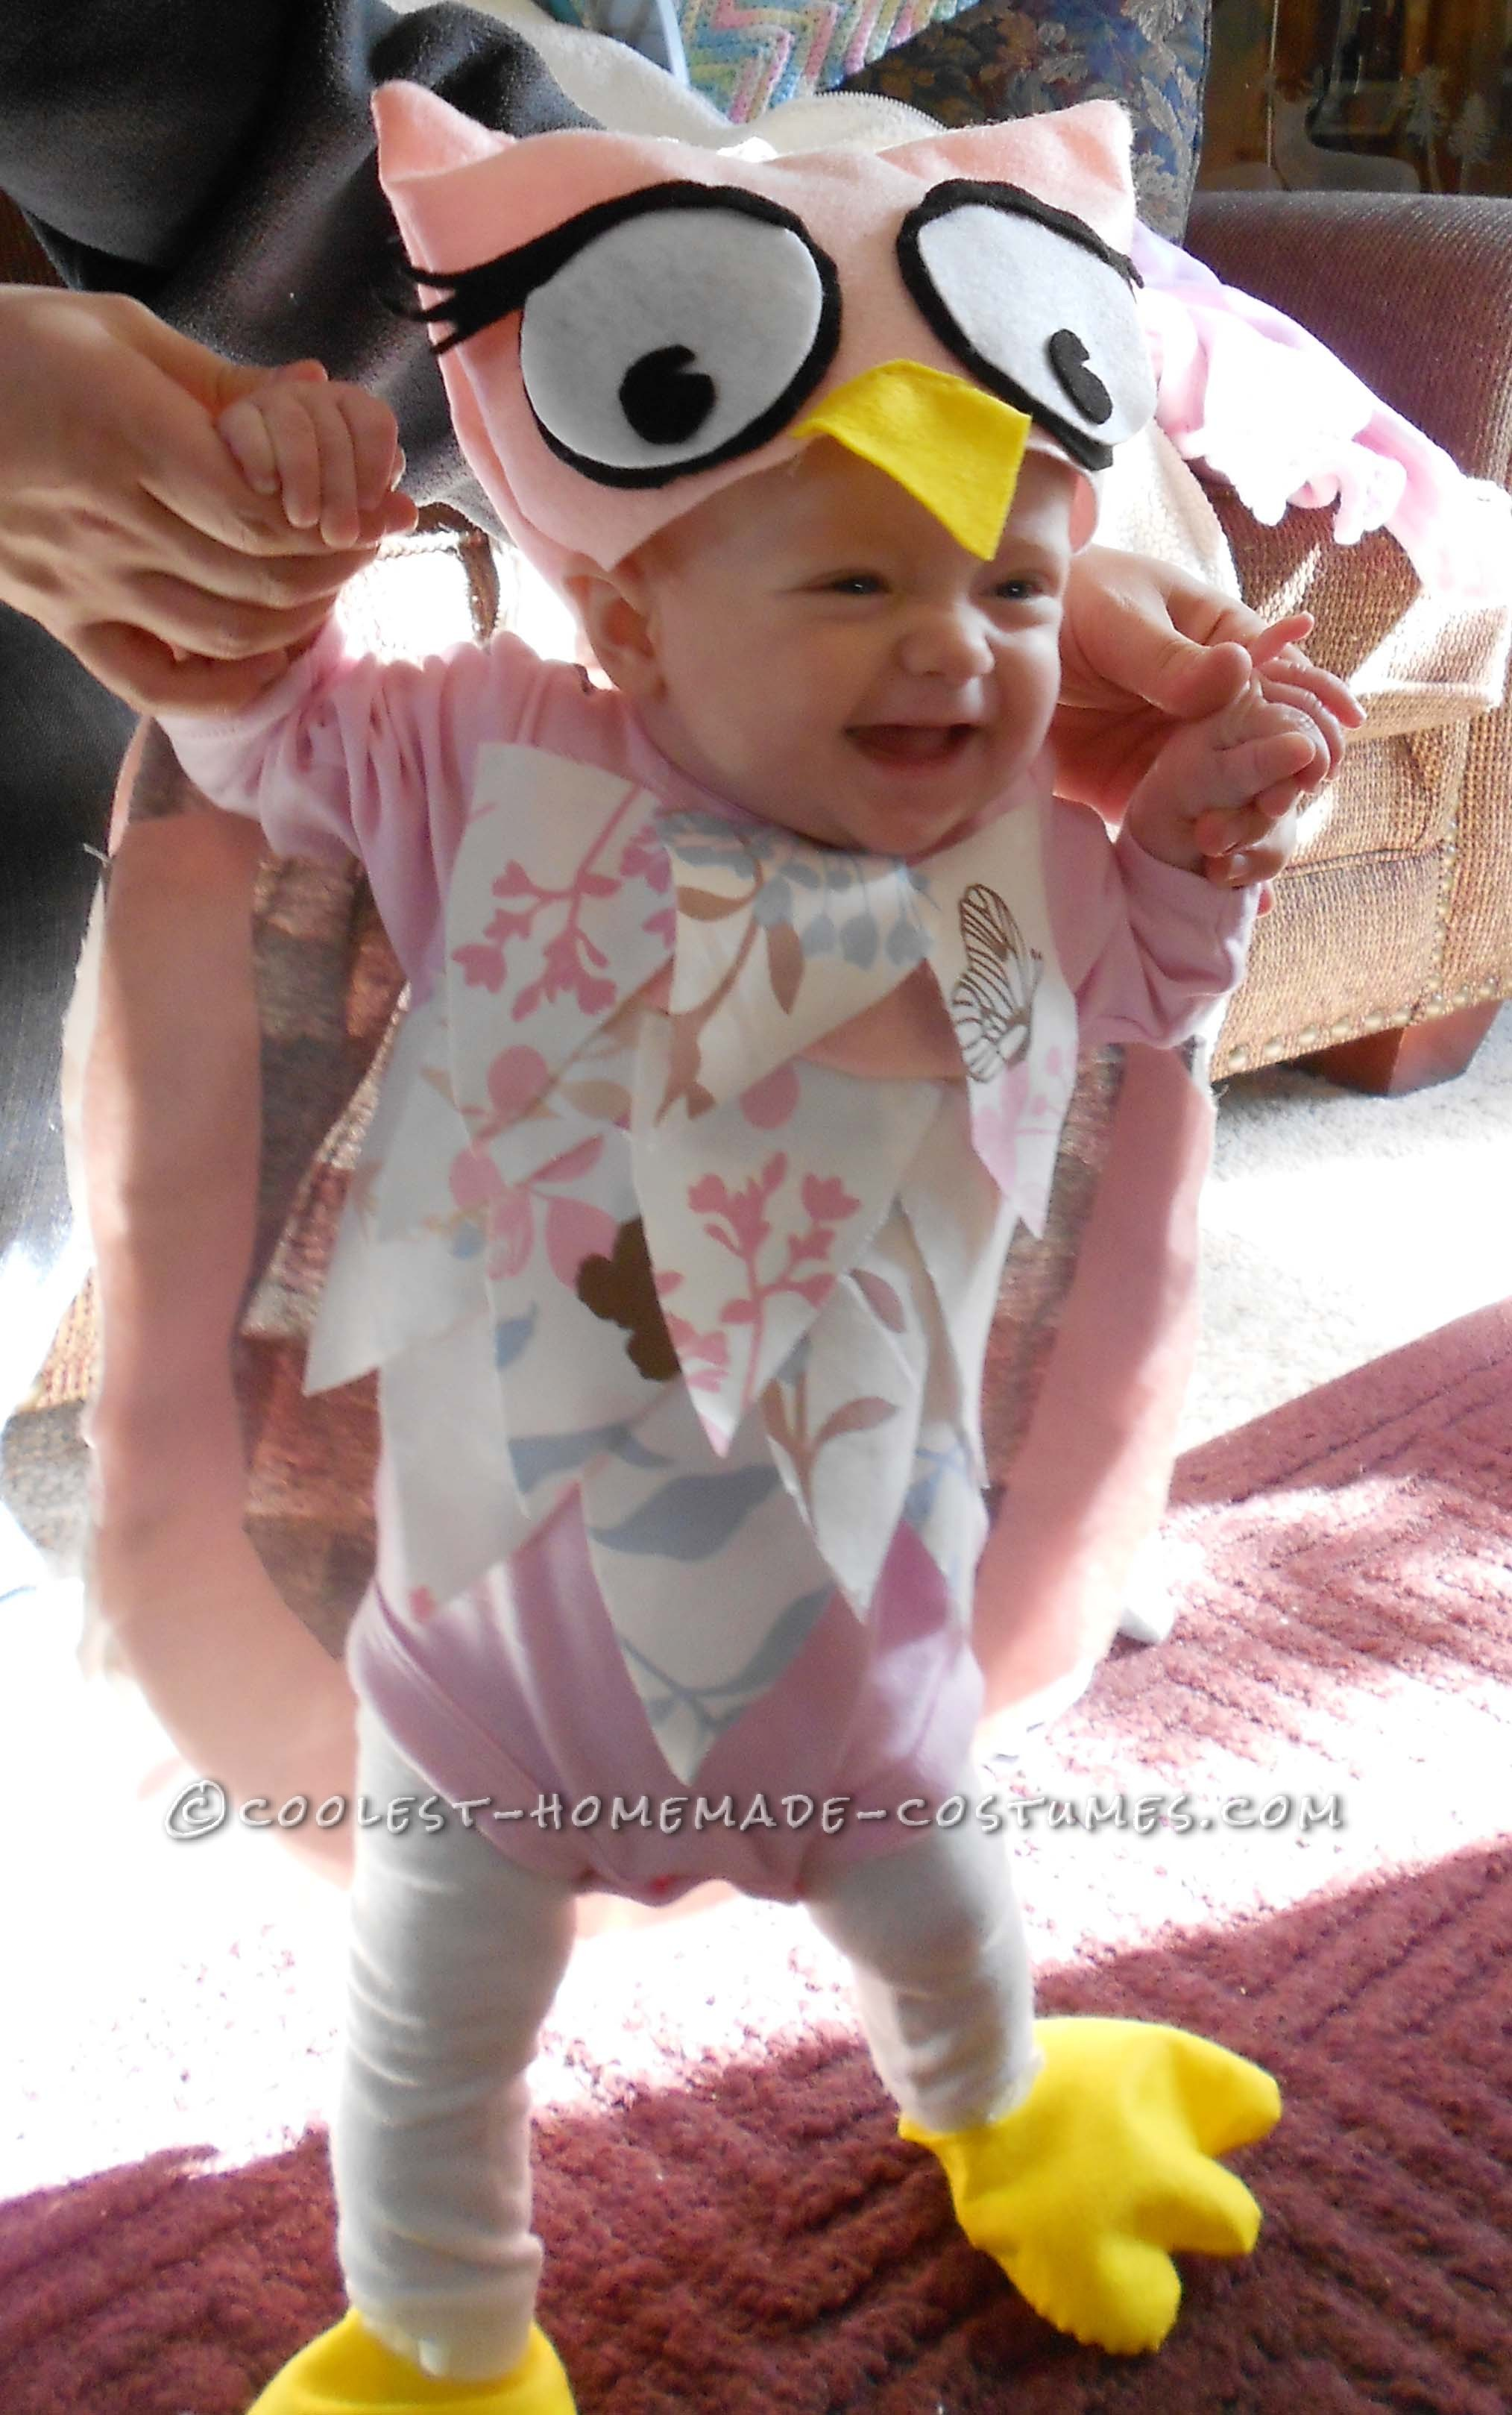 Sweet Homemade Halloween Baby Costume: Little Owl